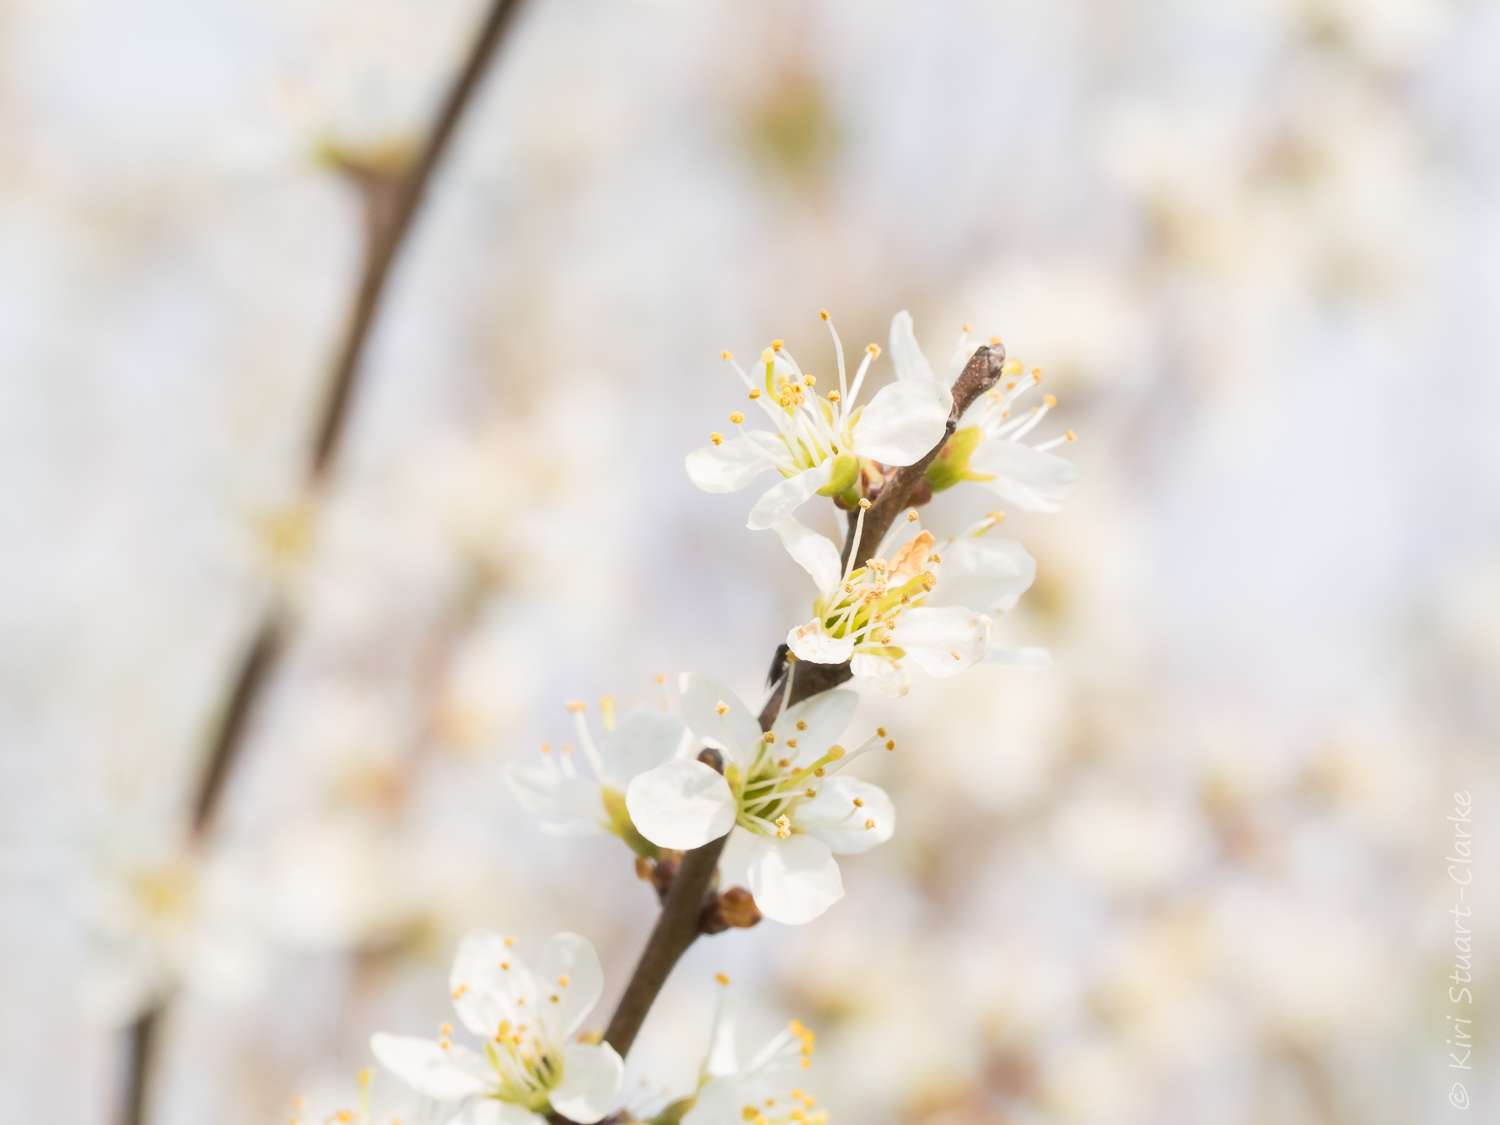 Blackthorn blossom sprig in springtime